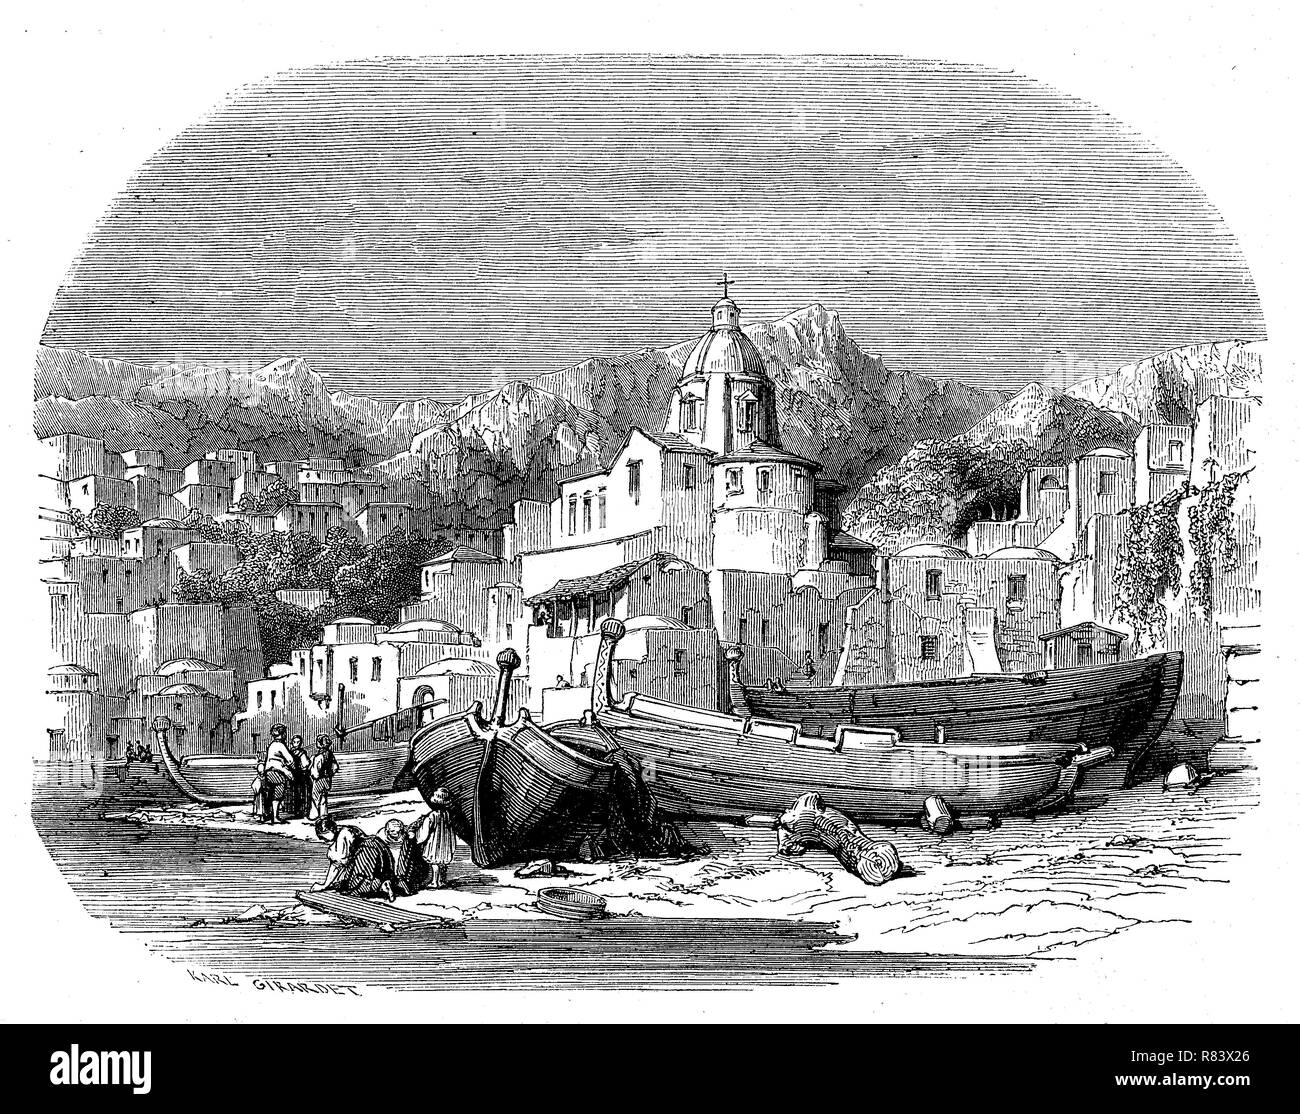 Digital improved reproduction, Positano, a village and comune on the Amalfi Coast, in Campania, Italy, Positano an der Amalfiküste, Kampanien, Italien, from an original print from the year 1855 - Stock Image